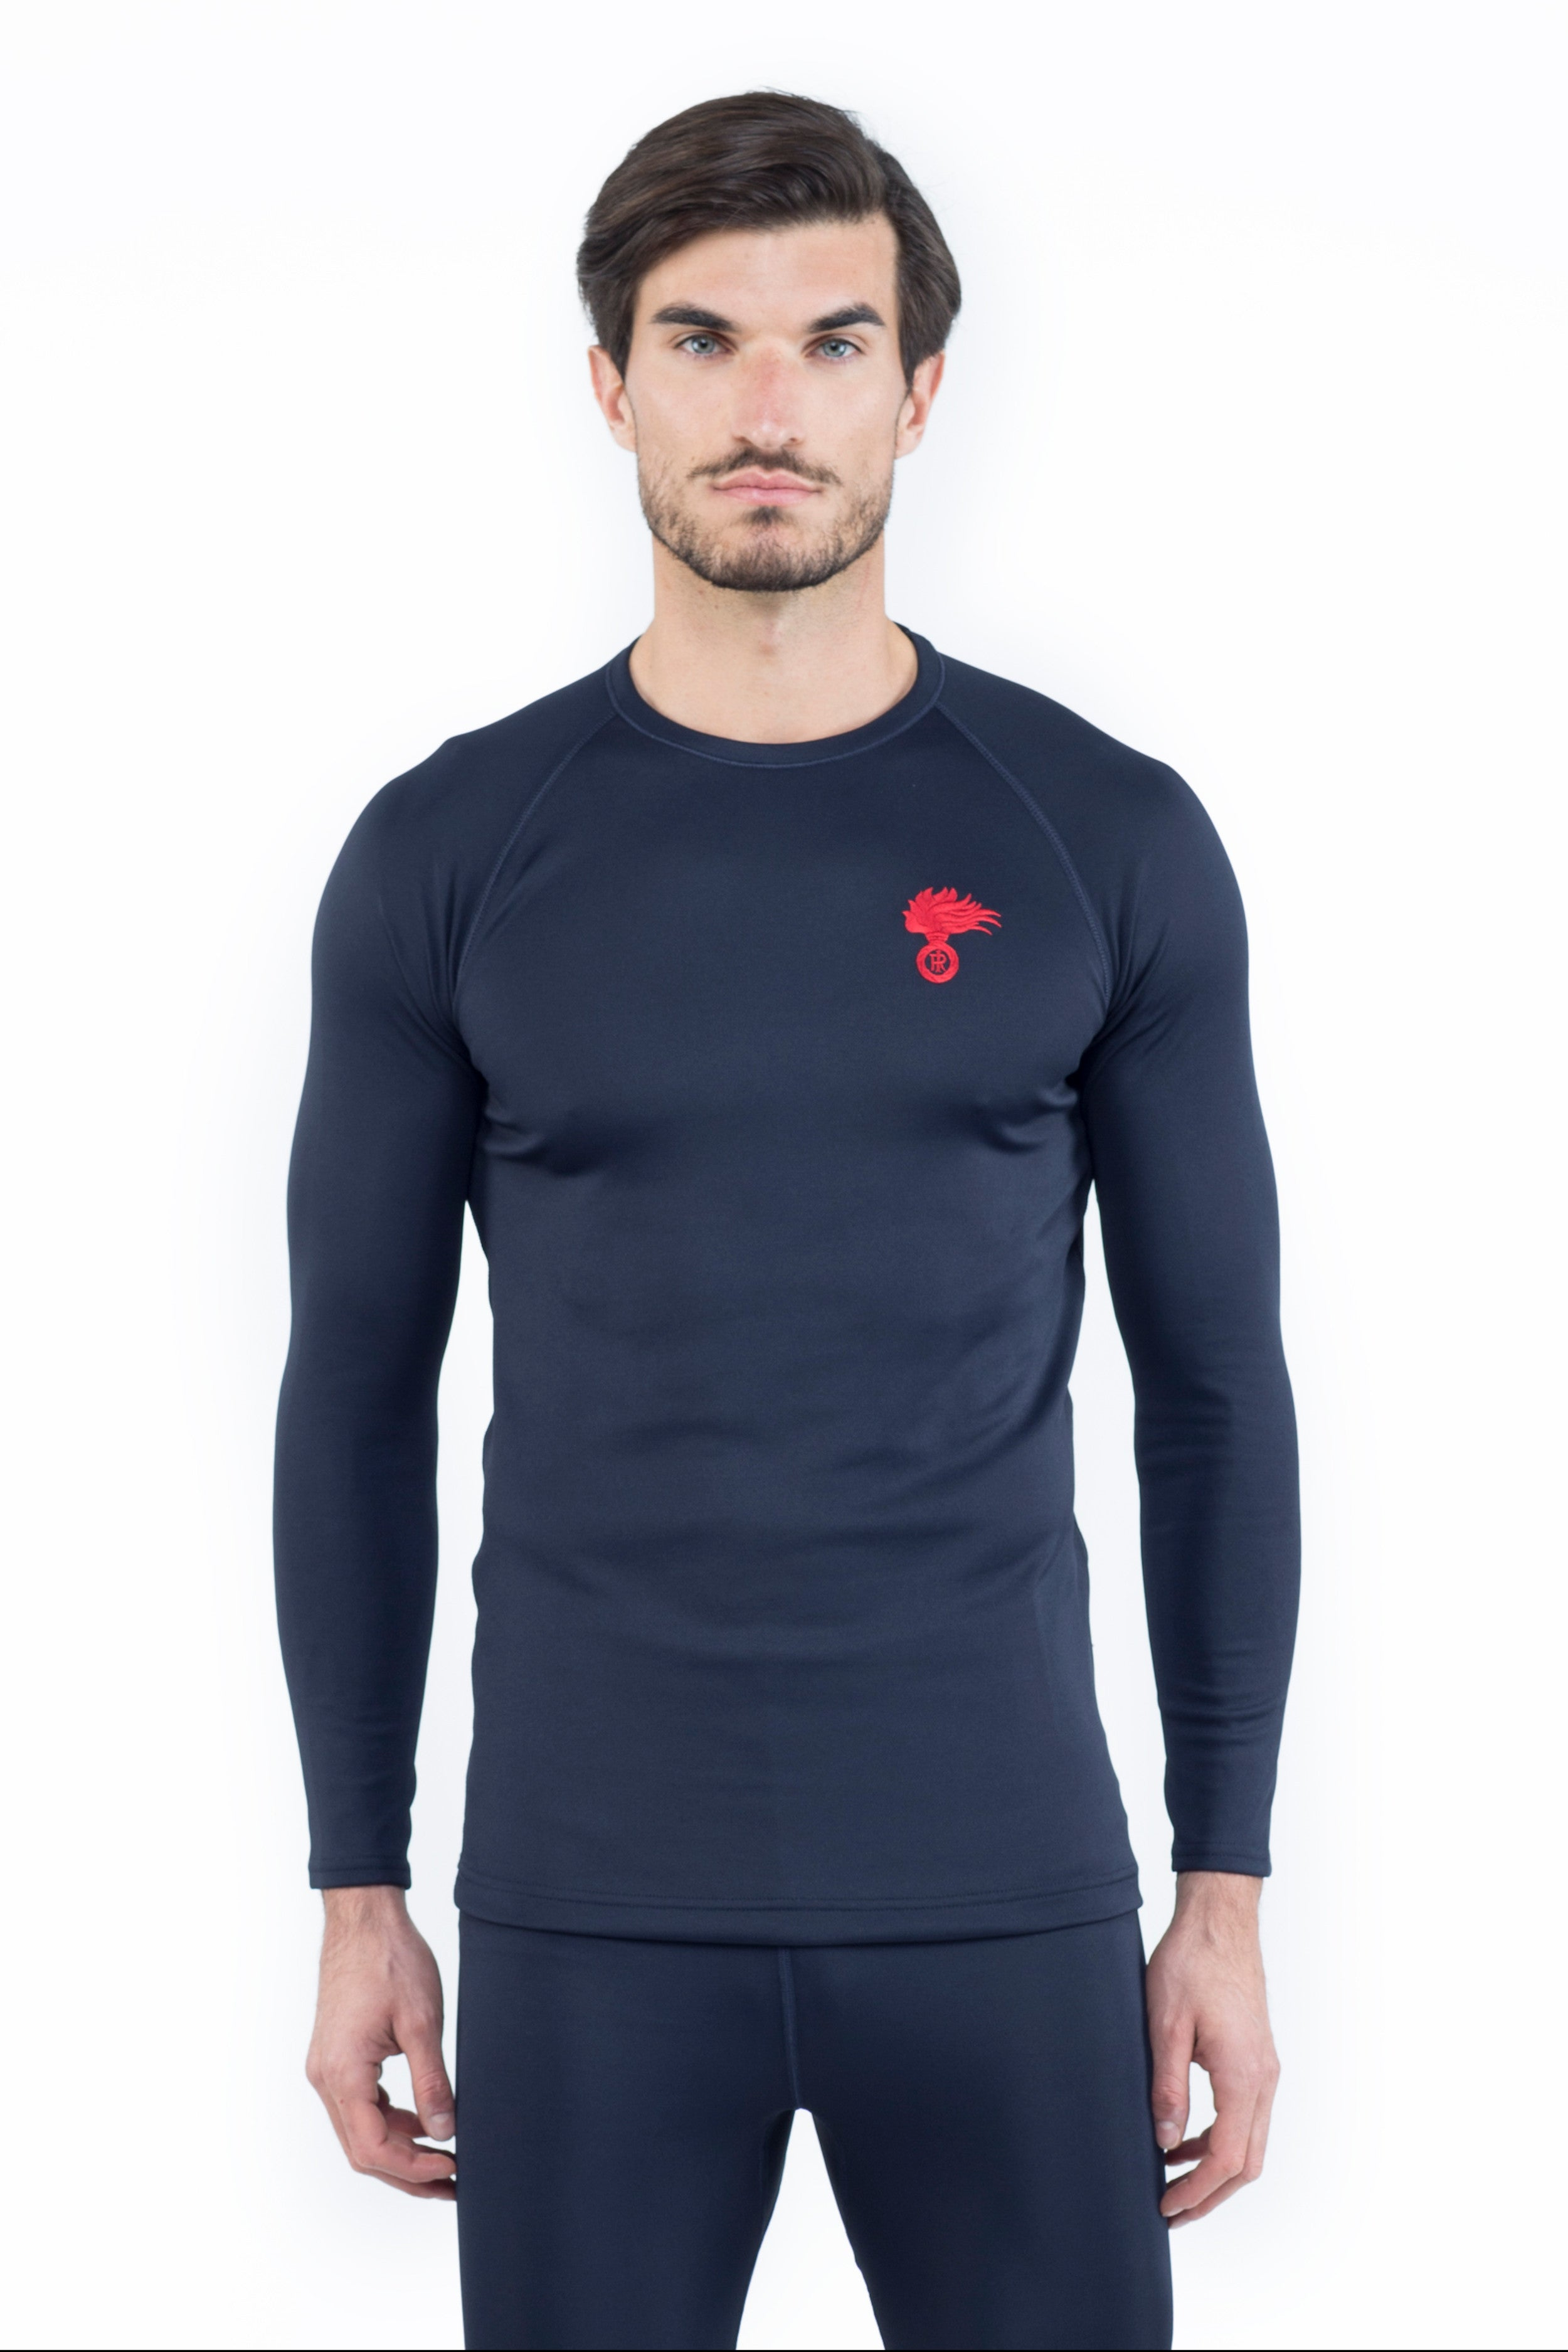 CARABINIERI  THERMAL SHIRT